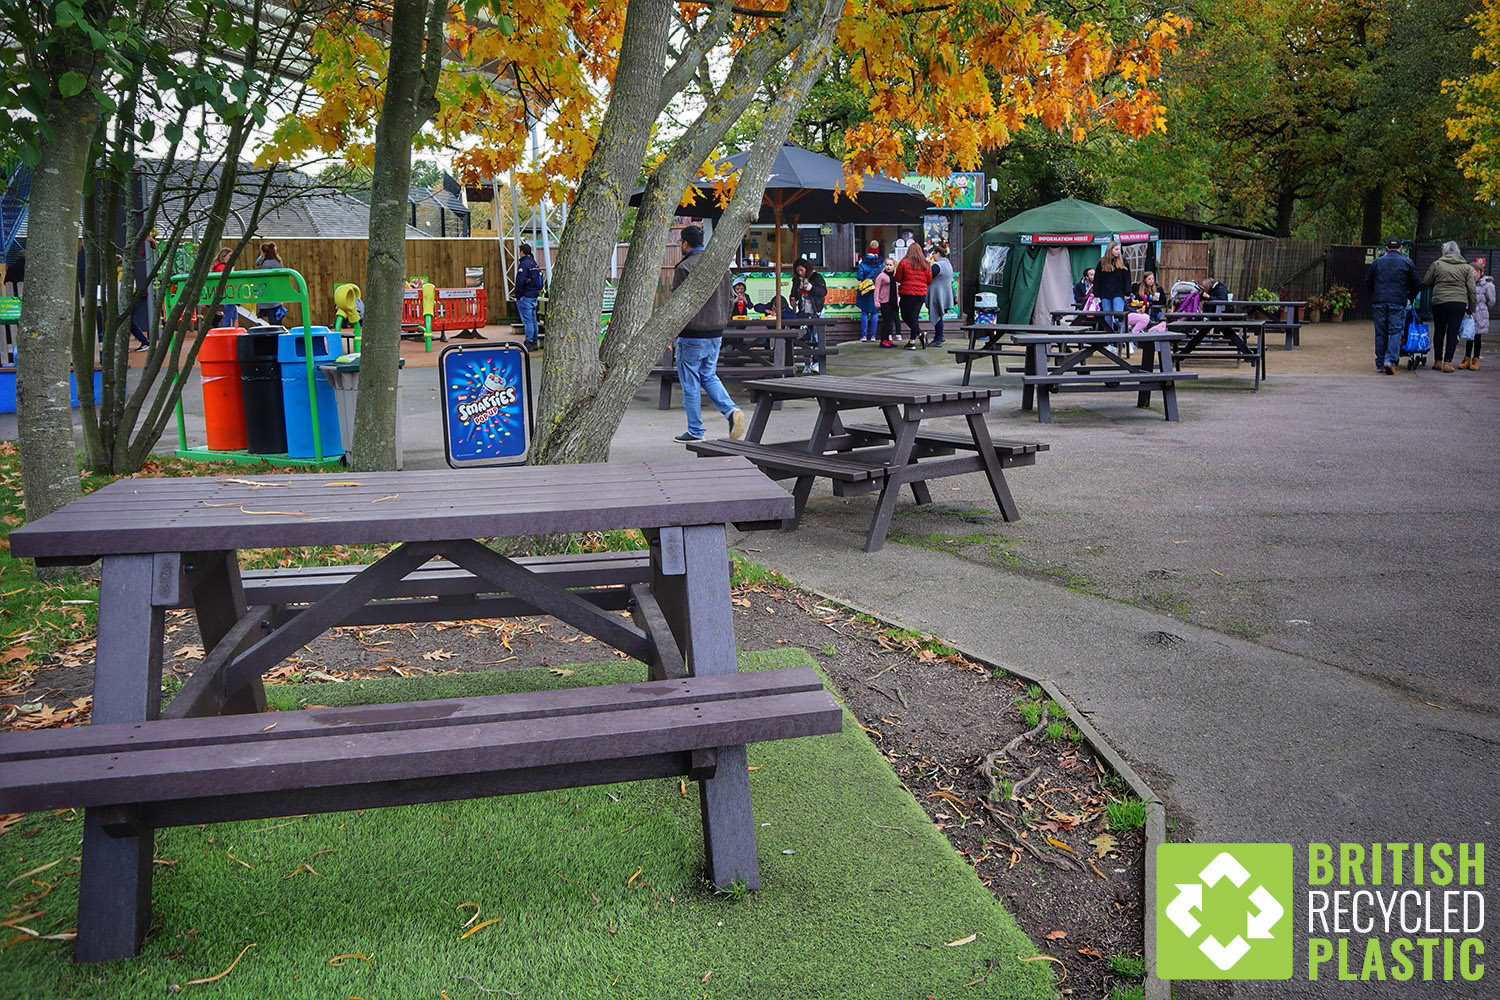 Award-winning Paradise Wildlife Park loves their recycled plastic picnic tables